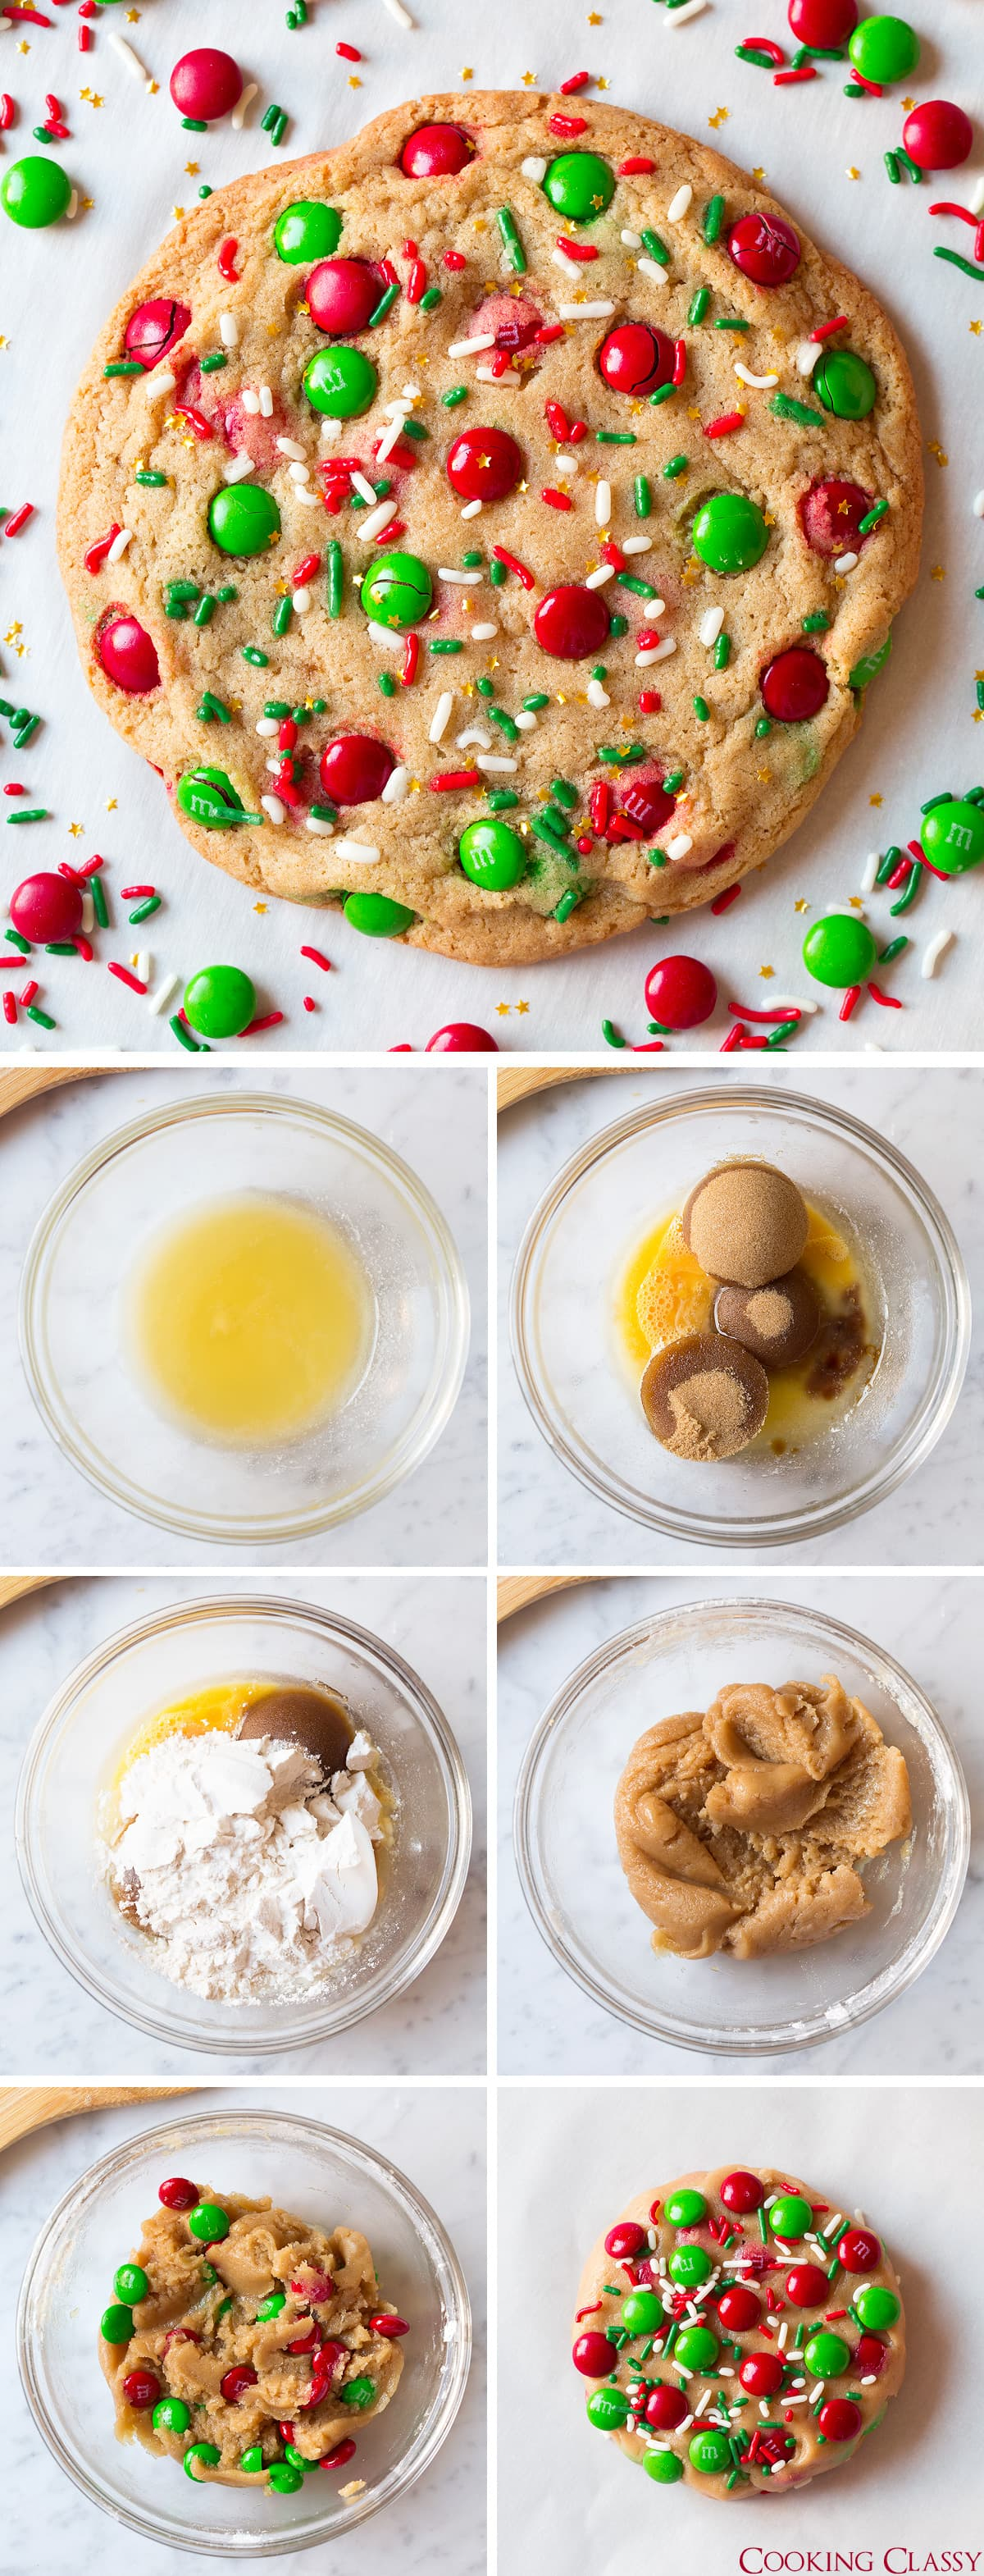 Collage image of how to make one chocolate chip cookie